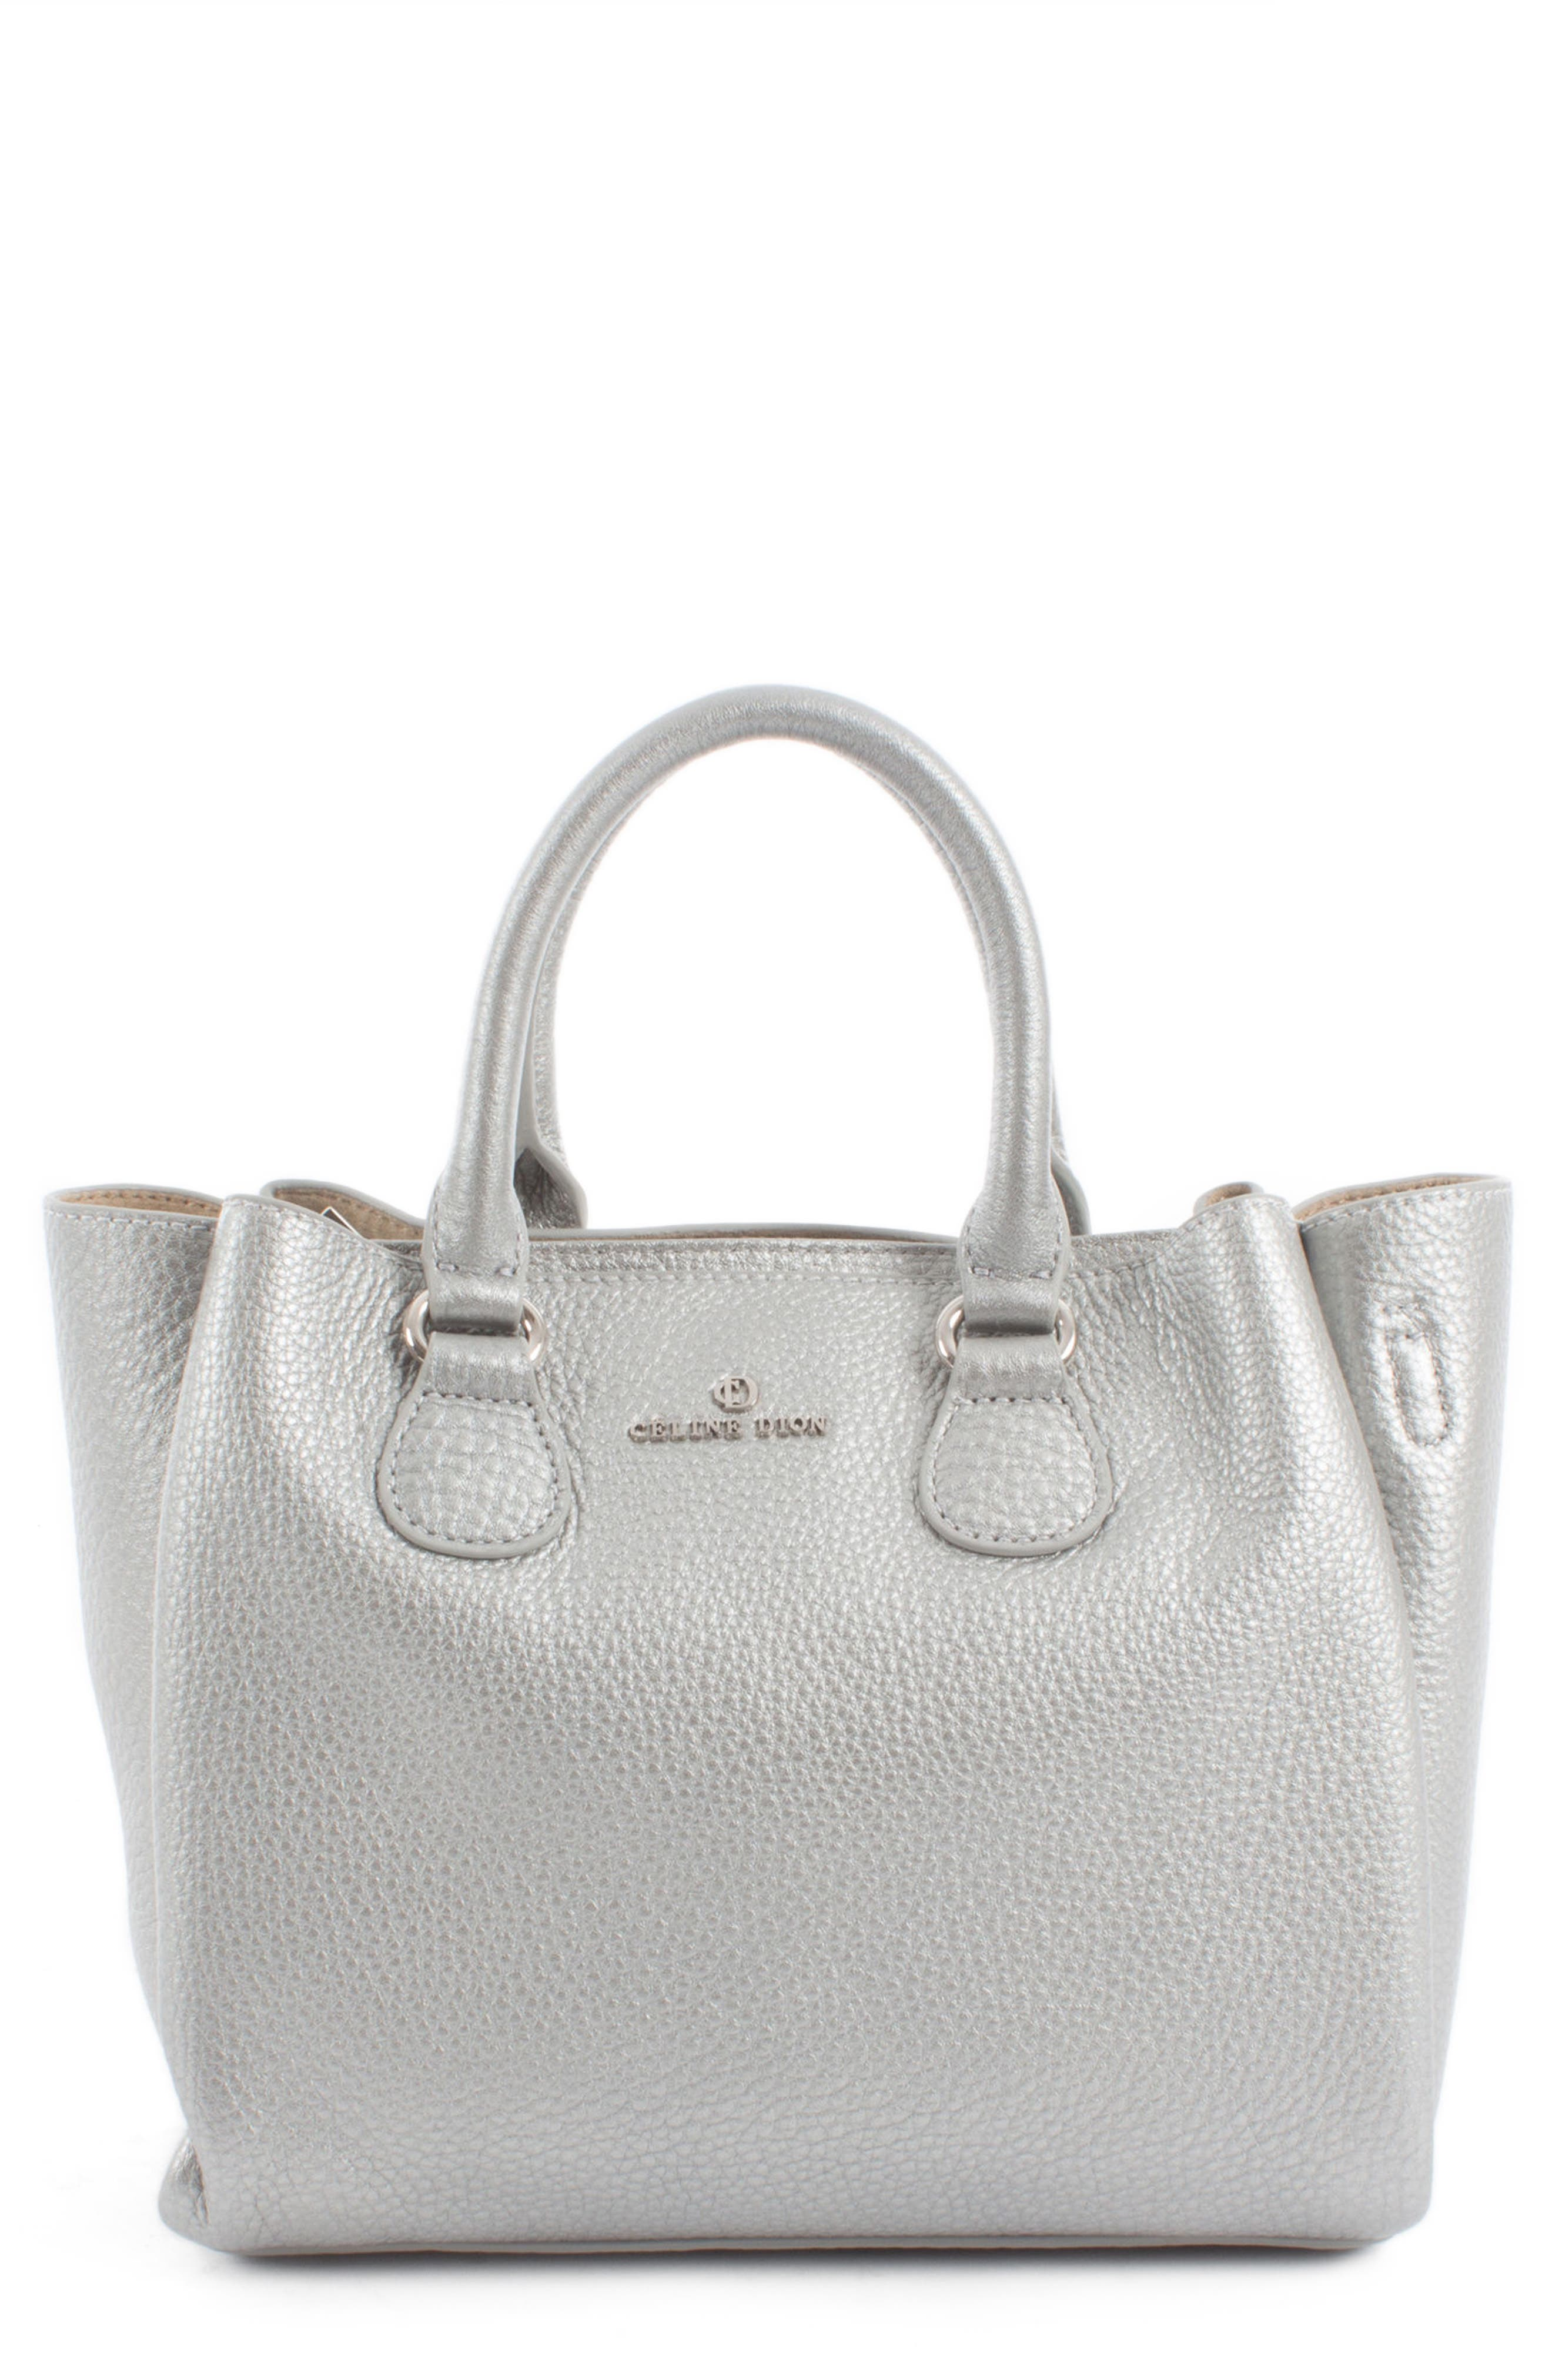 Main Image - Céline Dion Small Adagio Leather Satchel